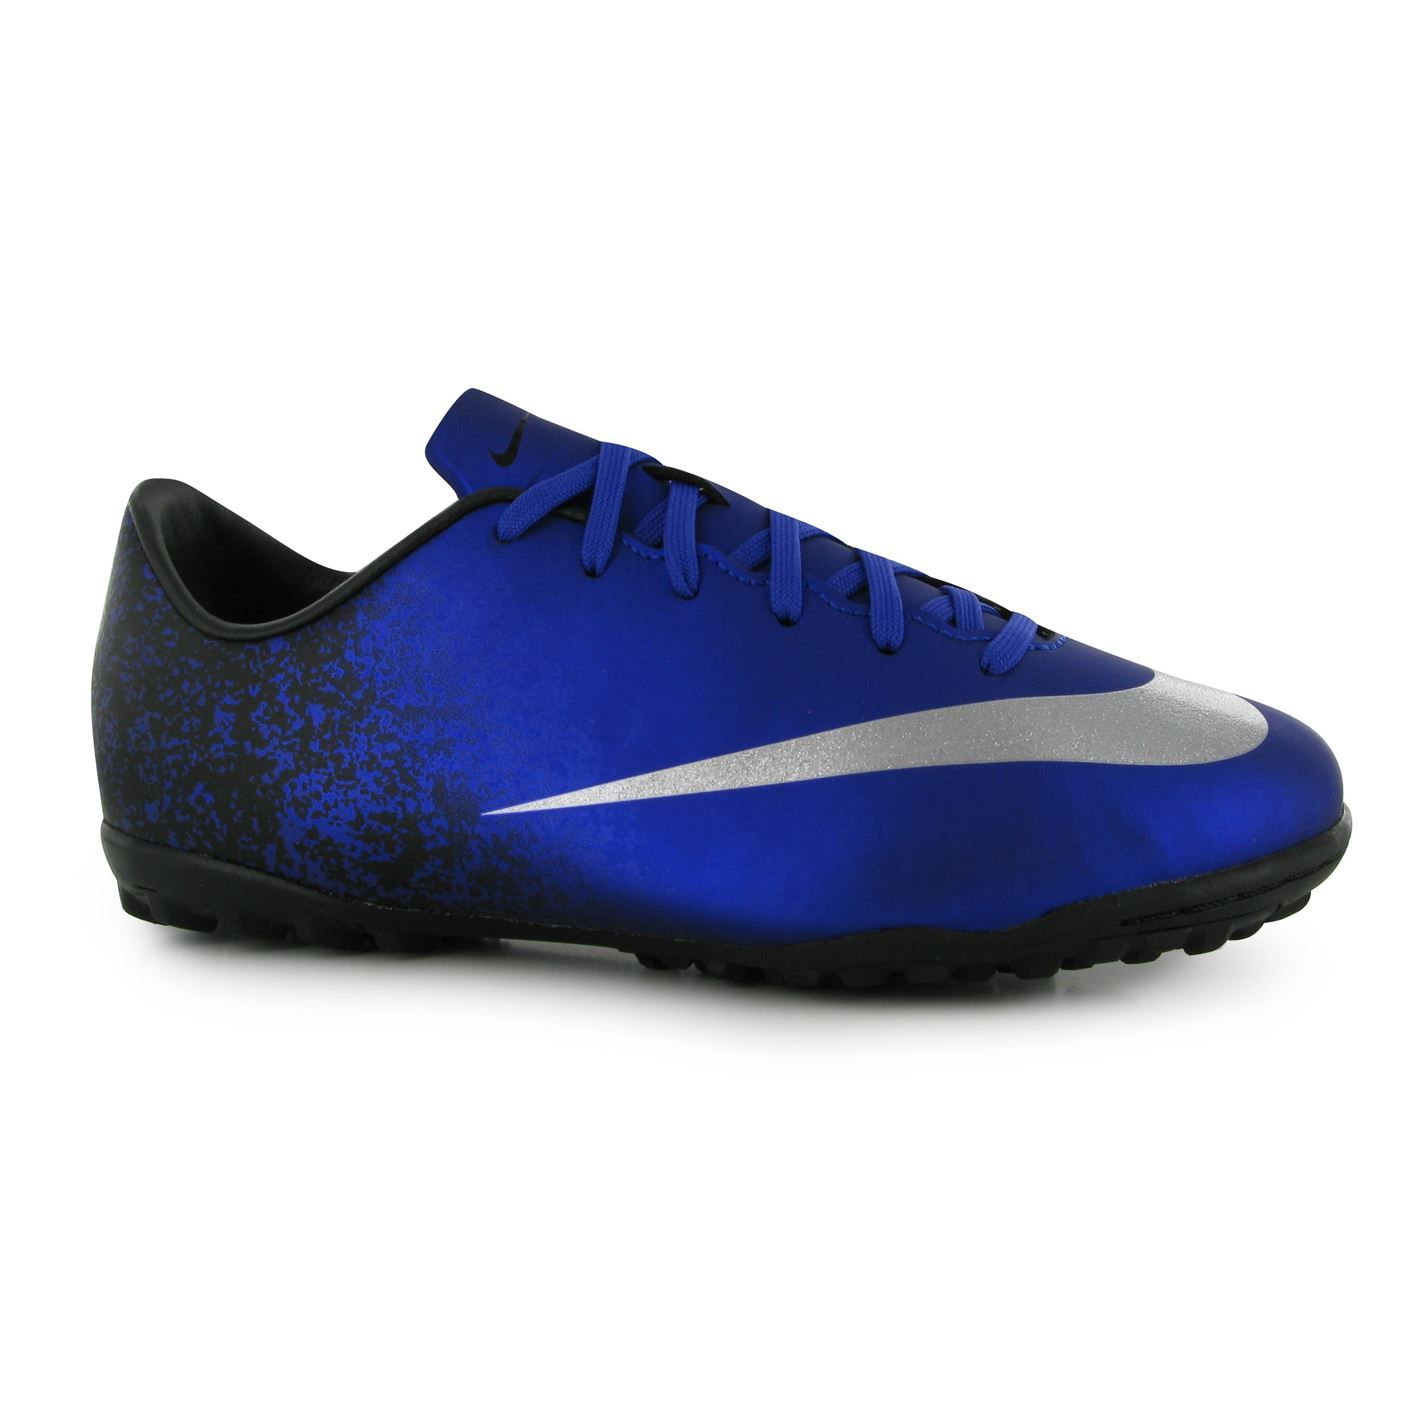 Cheap Soccer Shoes Online Usa